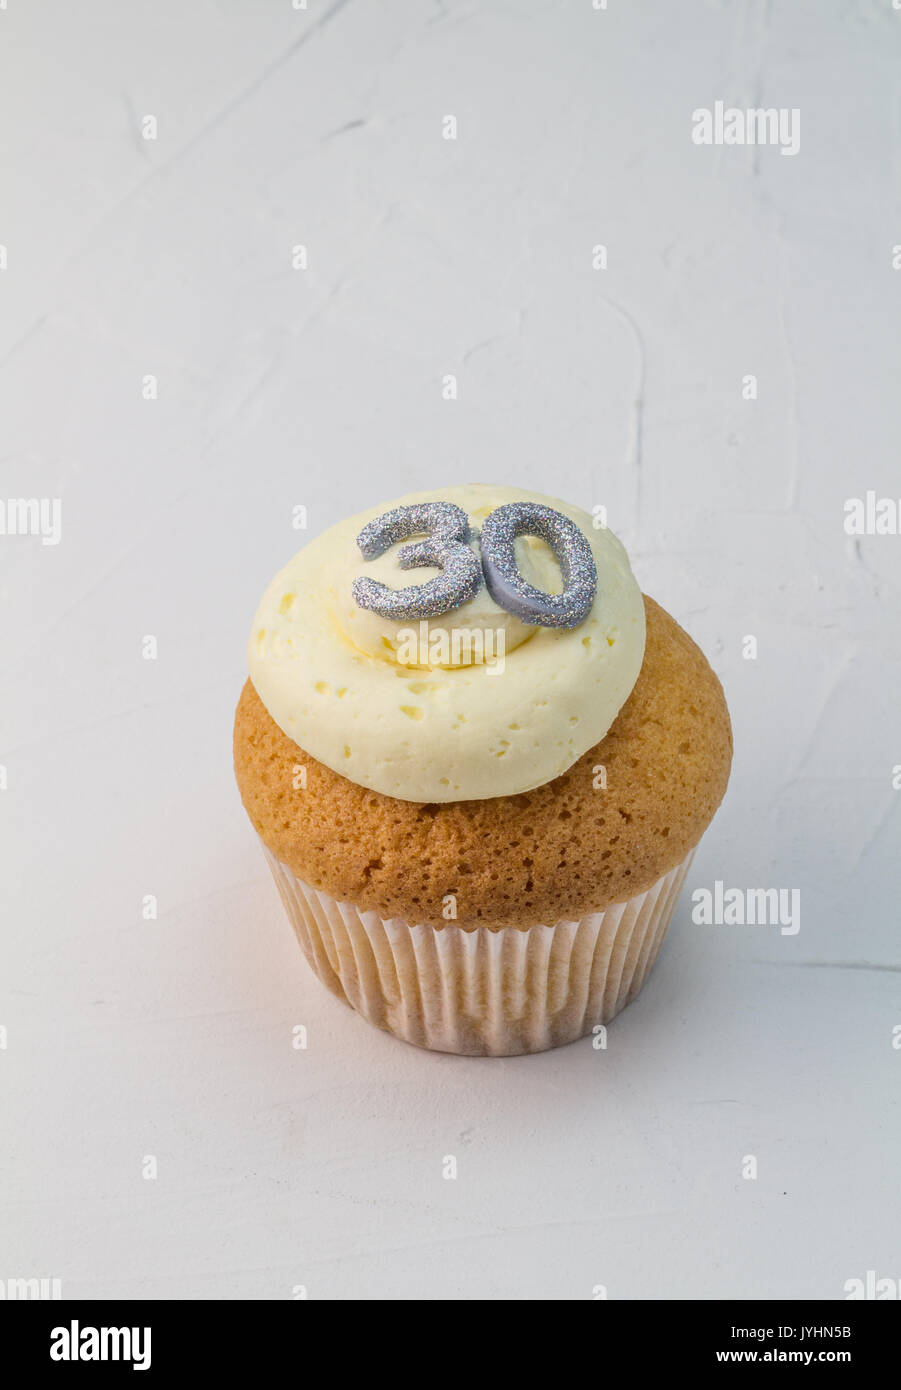 Single vanilla sponge cup cake with silver glitter number 30 on top of creamy white frosting isolated on rustic white background - celebration backgro - Stock Image